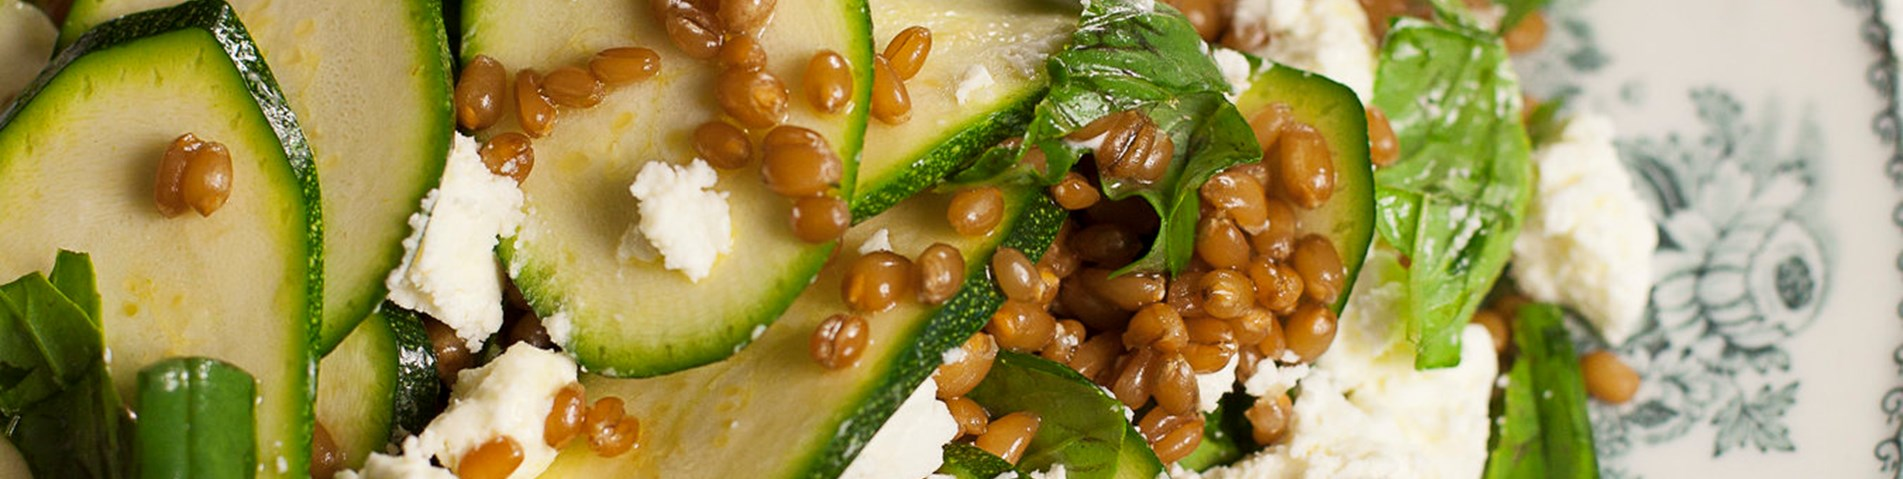 rsz_courgette_wheatberry_&_basil_salad_with_sussex_slipcote.jpg